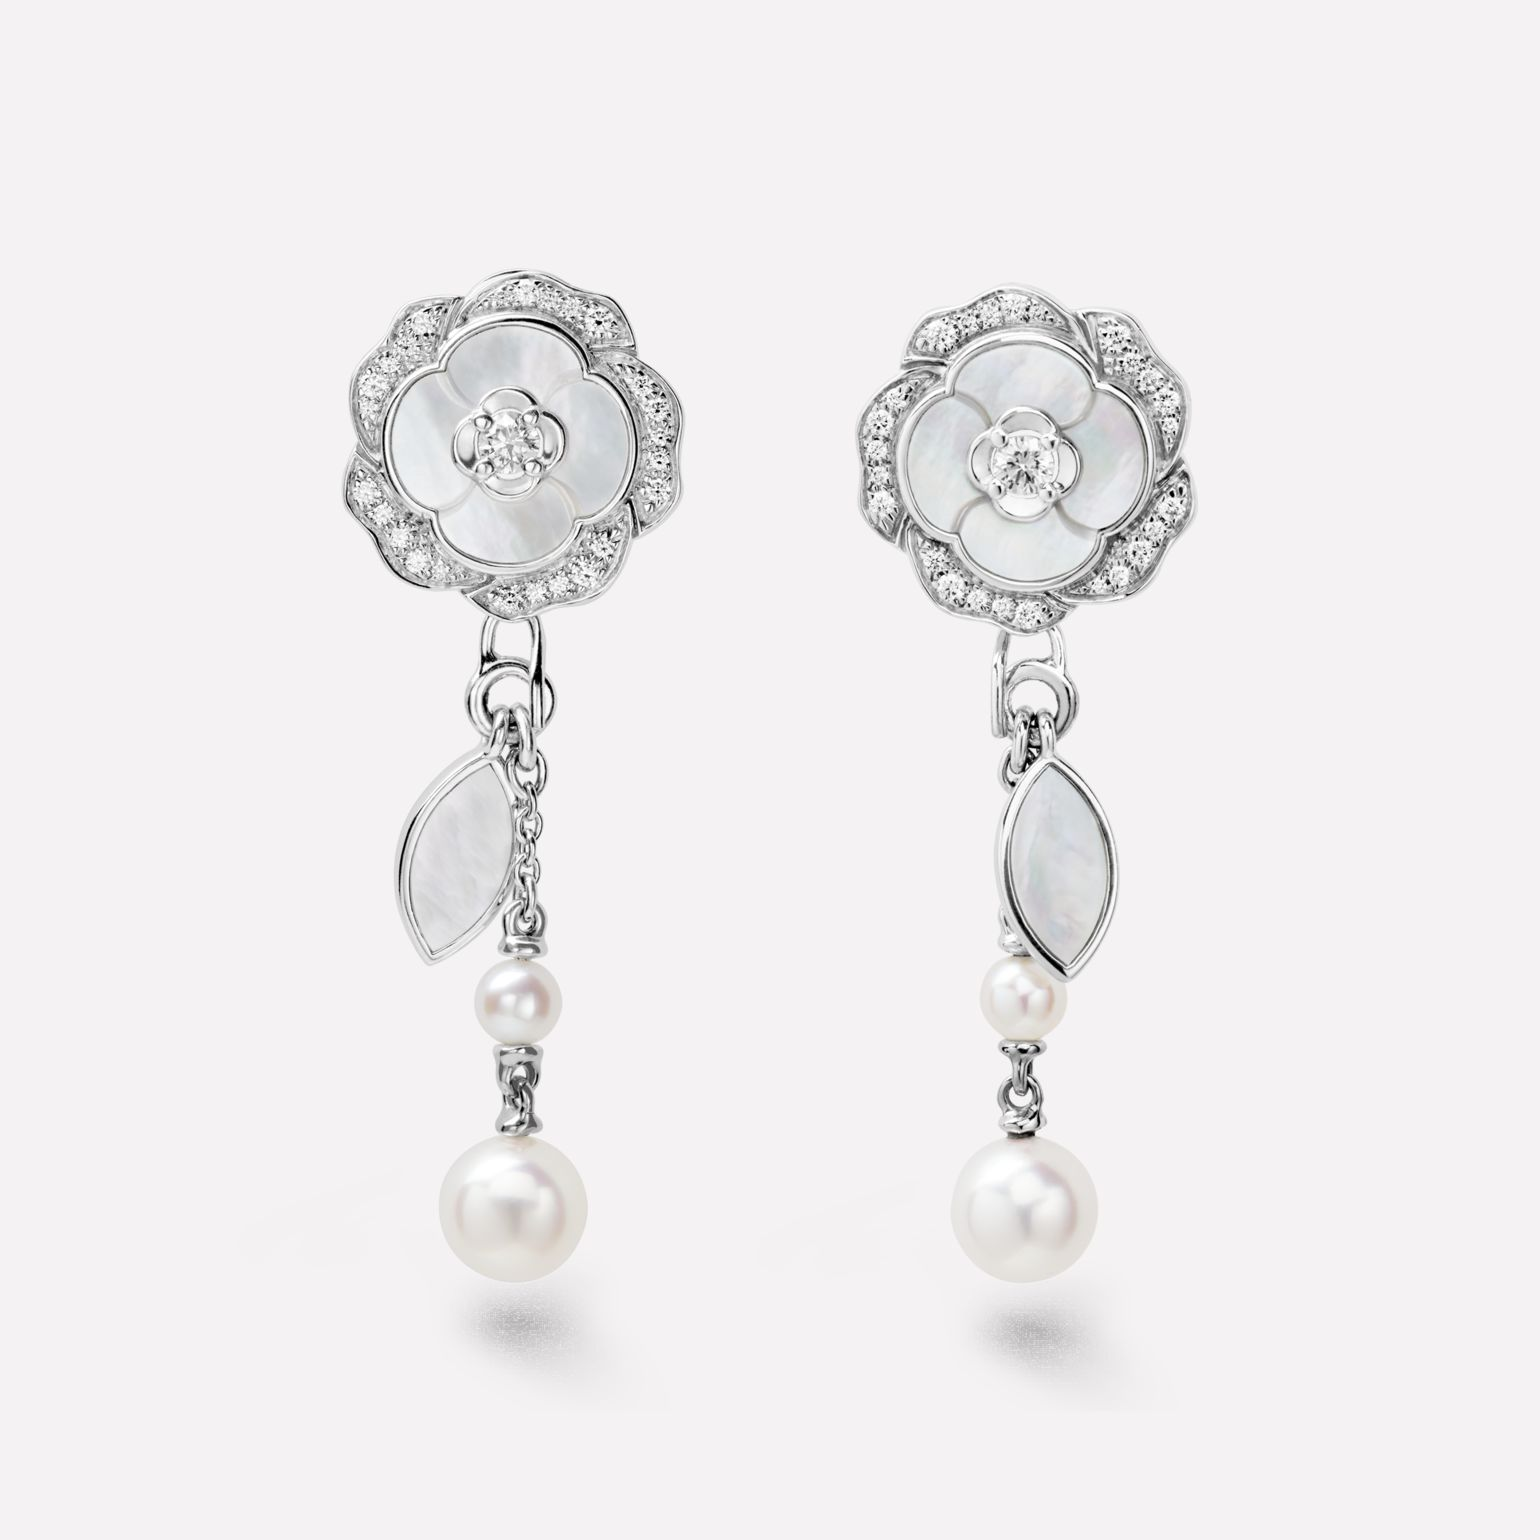 Camélia Earrings Pétales de Camélia earrings in 18K white gold, diamonds, cultured pearls and mother-of-pearl